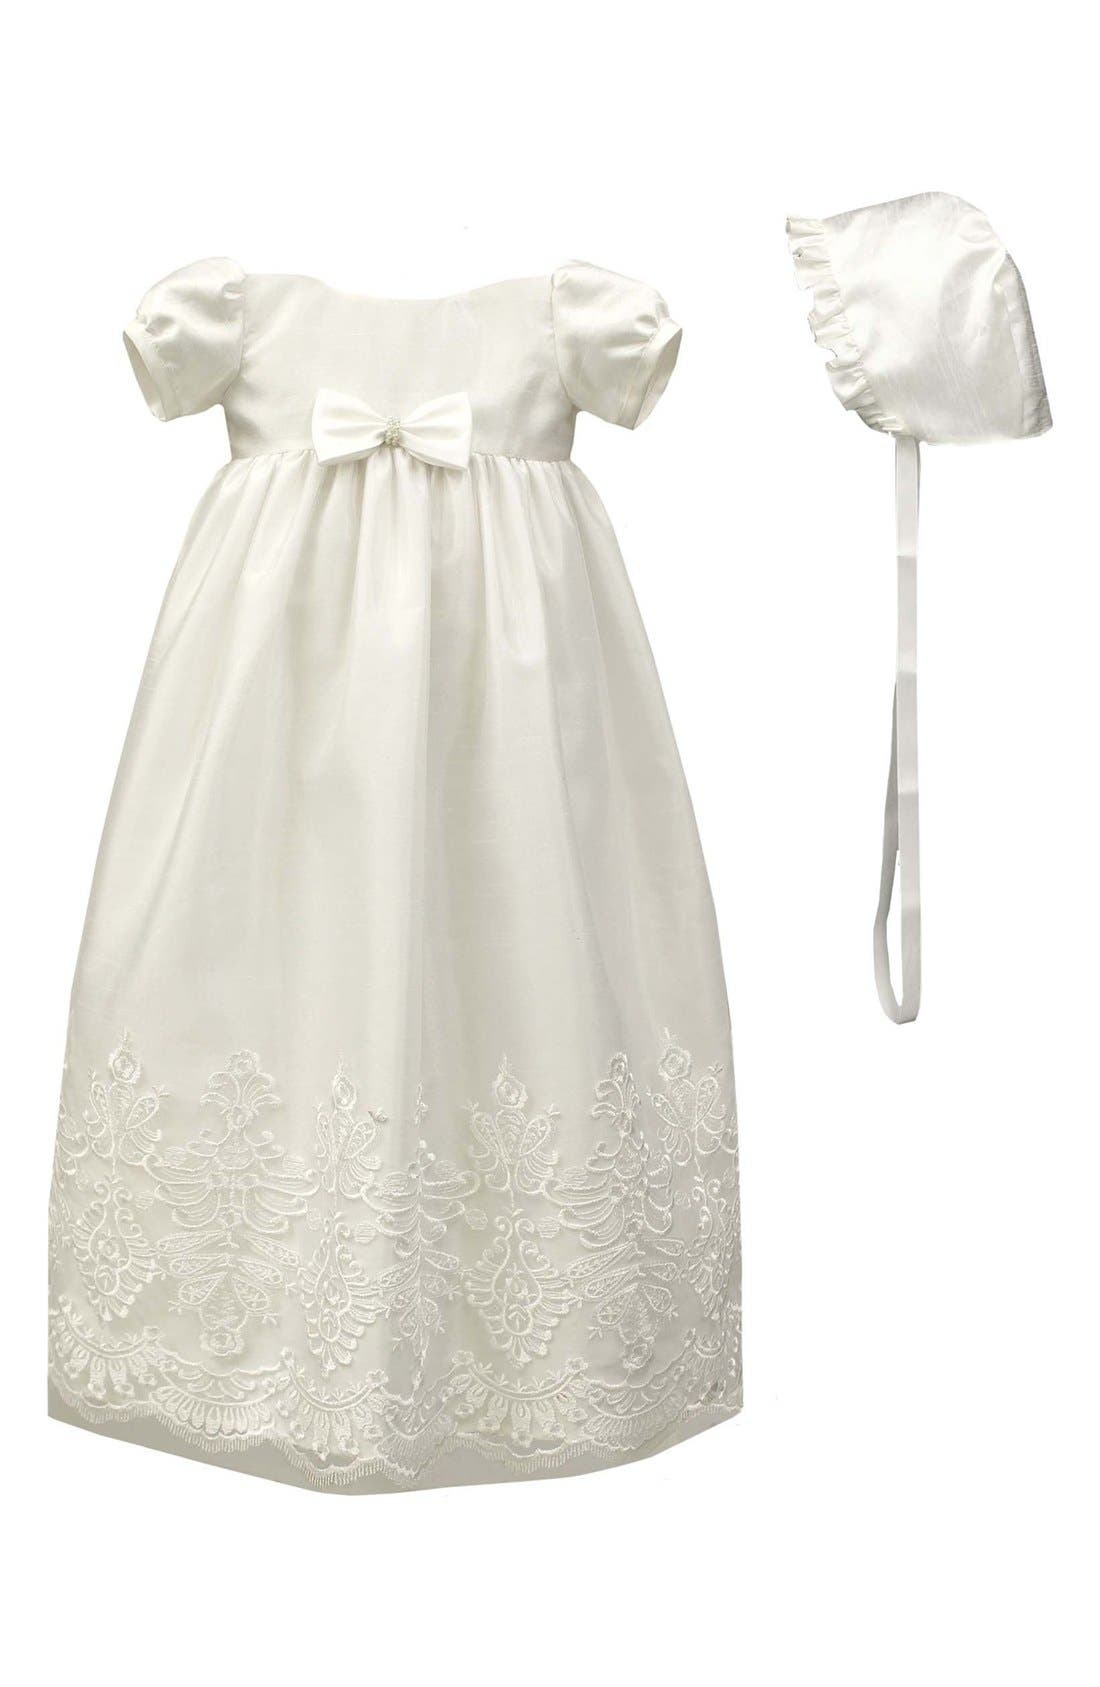 C.I. Castro & Co. Christening Gown & Bonnet Set (Baby)